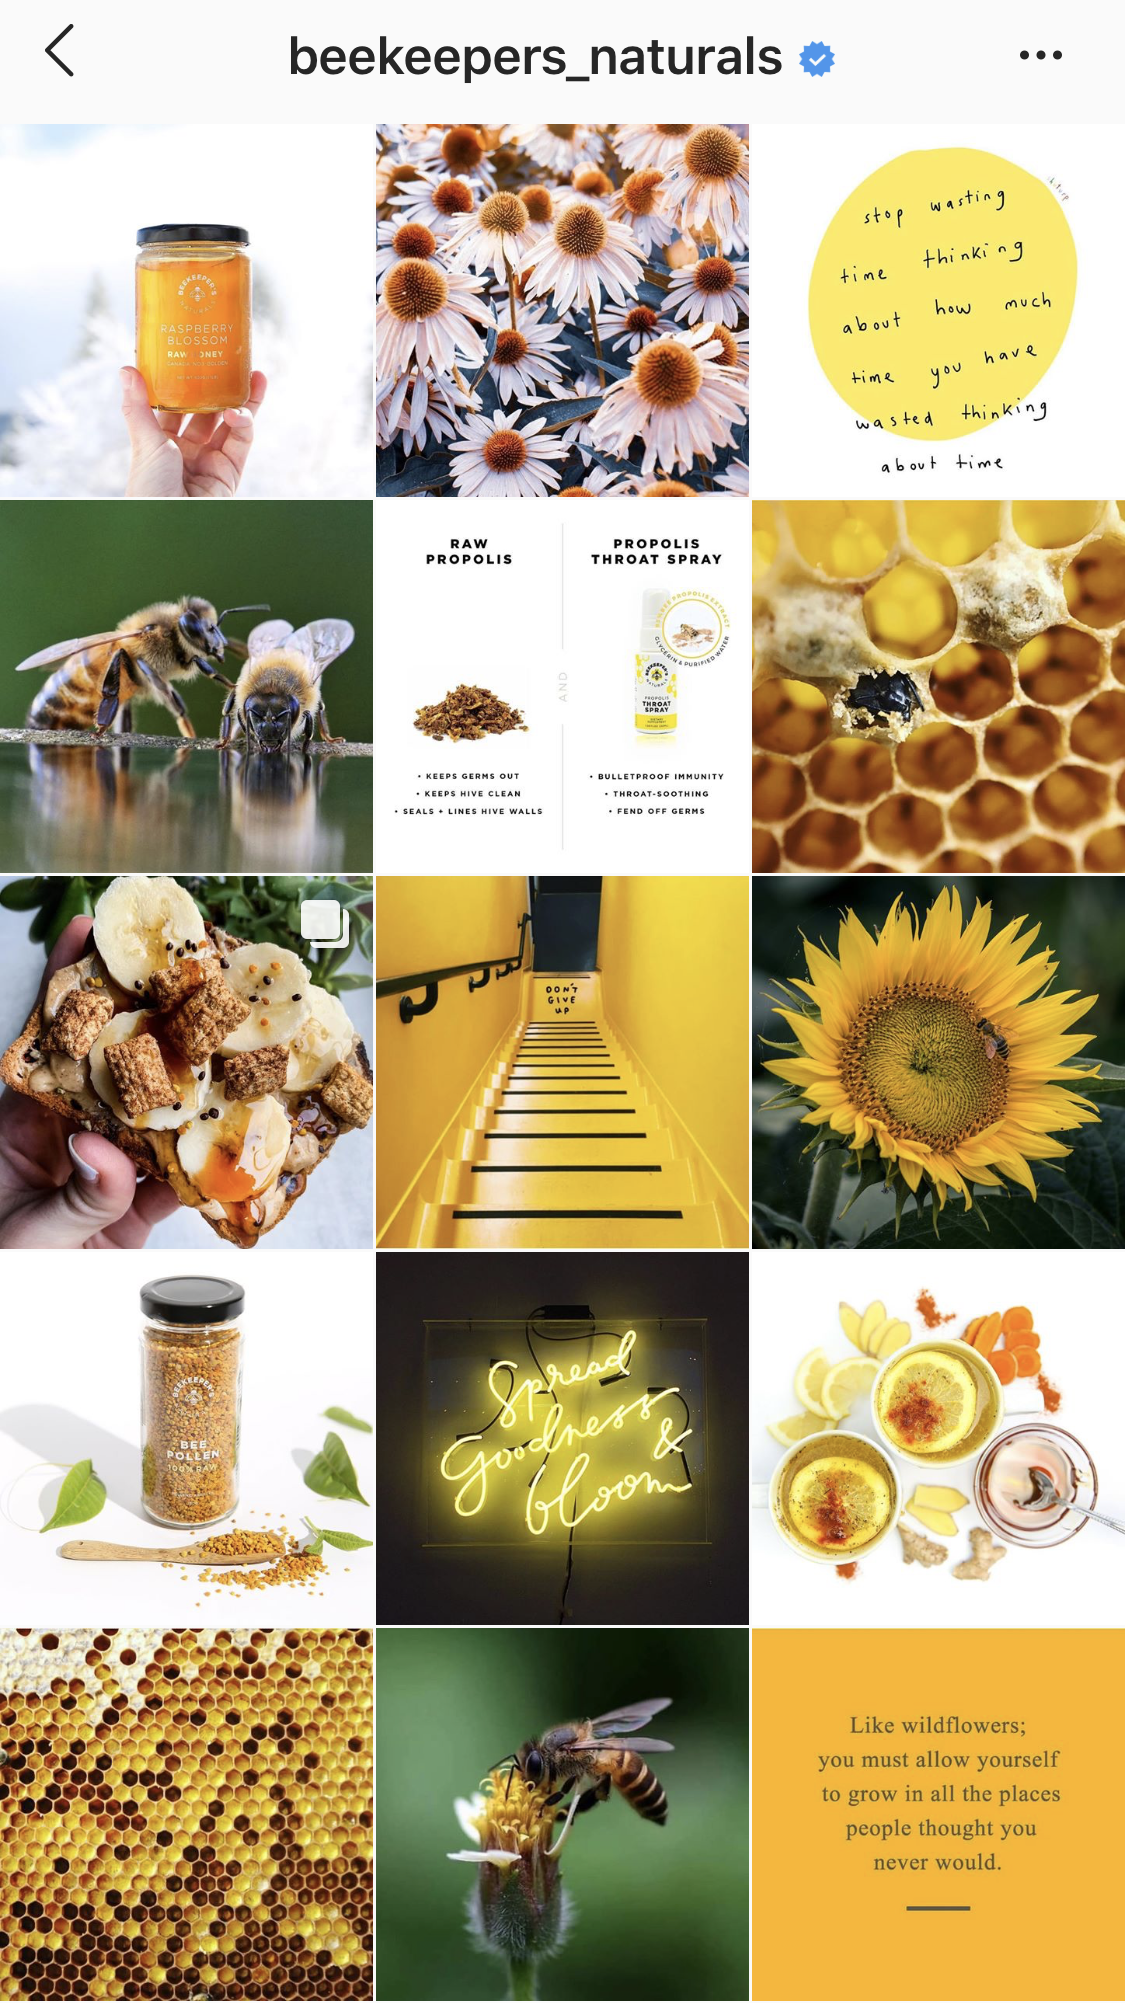 Beekeepers Naturals Instagram feed is an excellent example of visual storytelling done right! Bright, graphic images with a focused color palette help the brand images come to life.